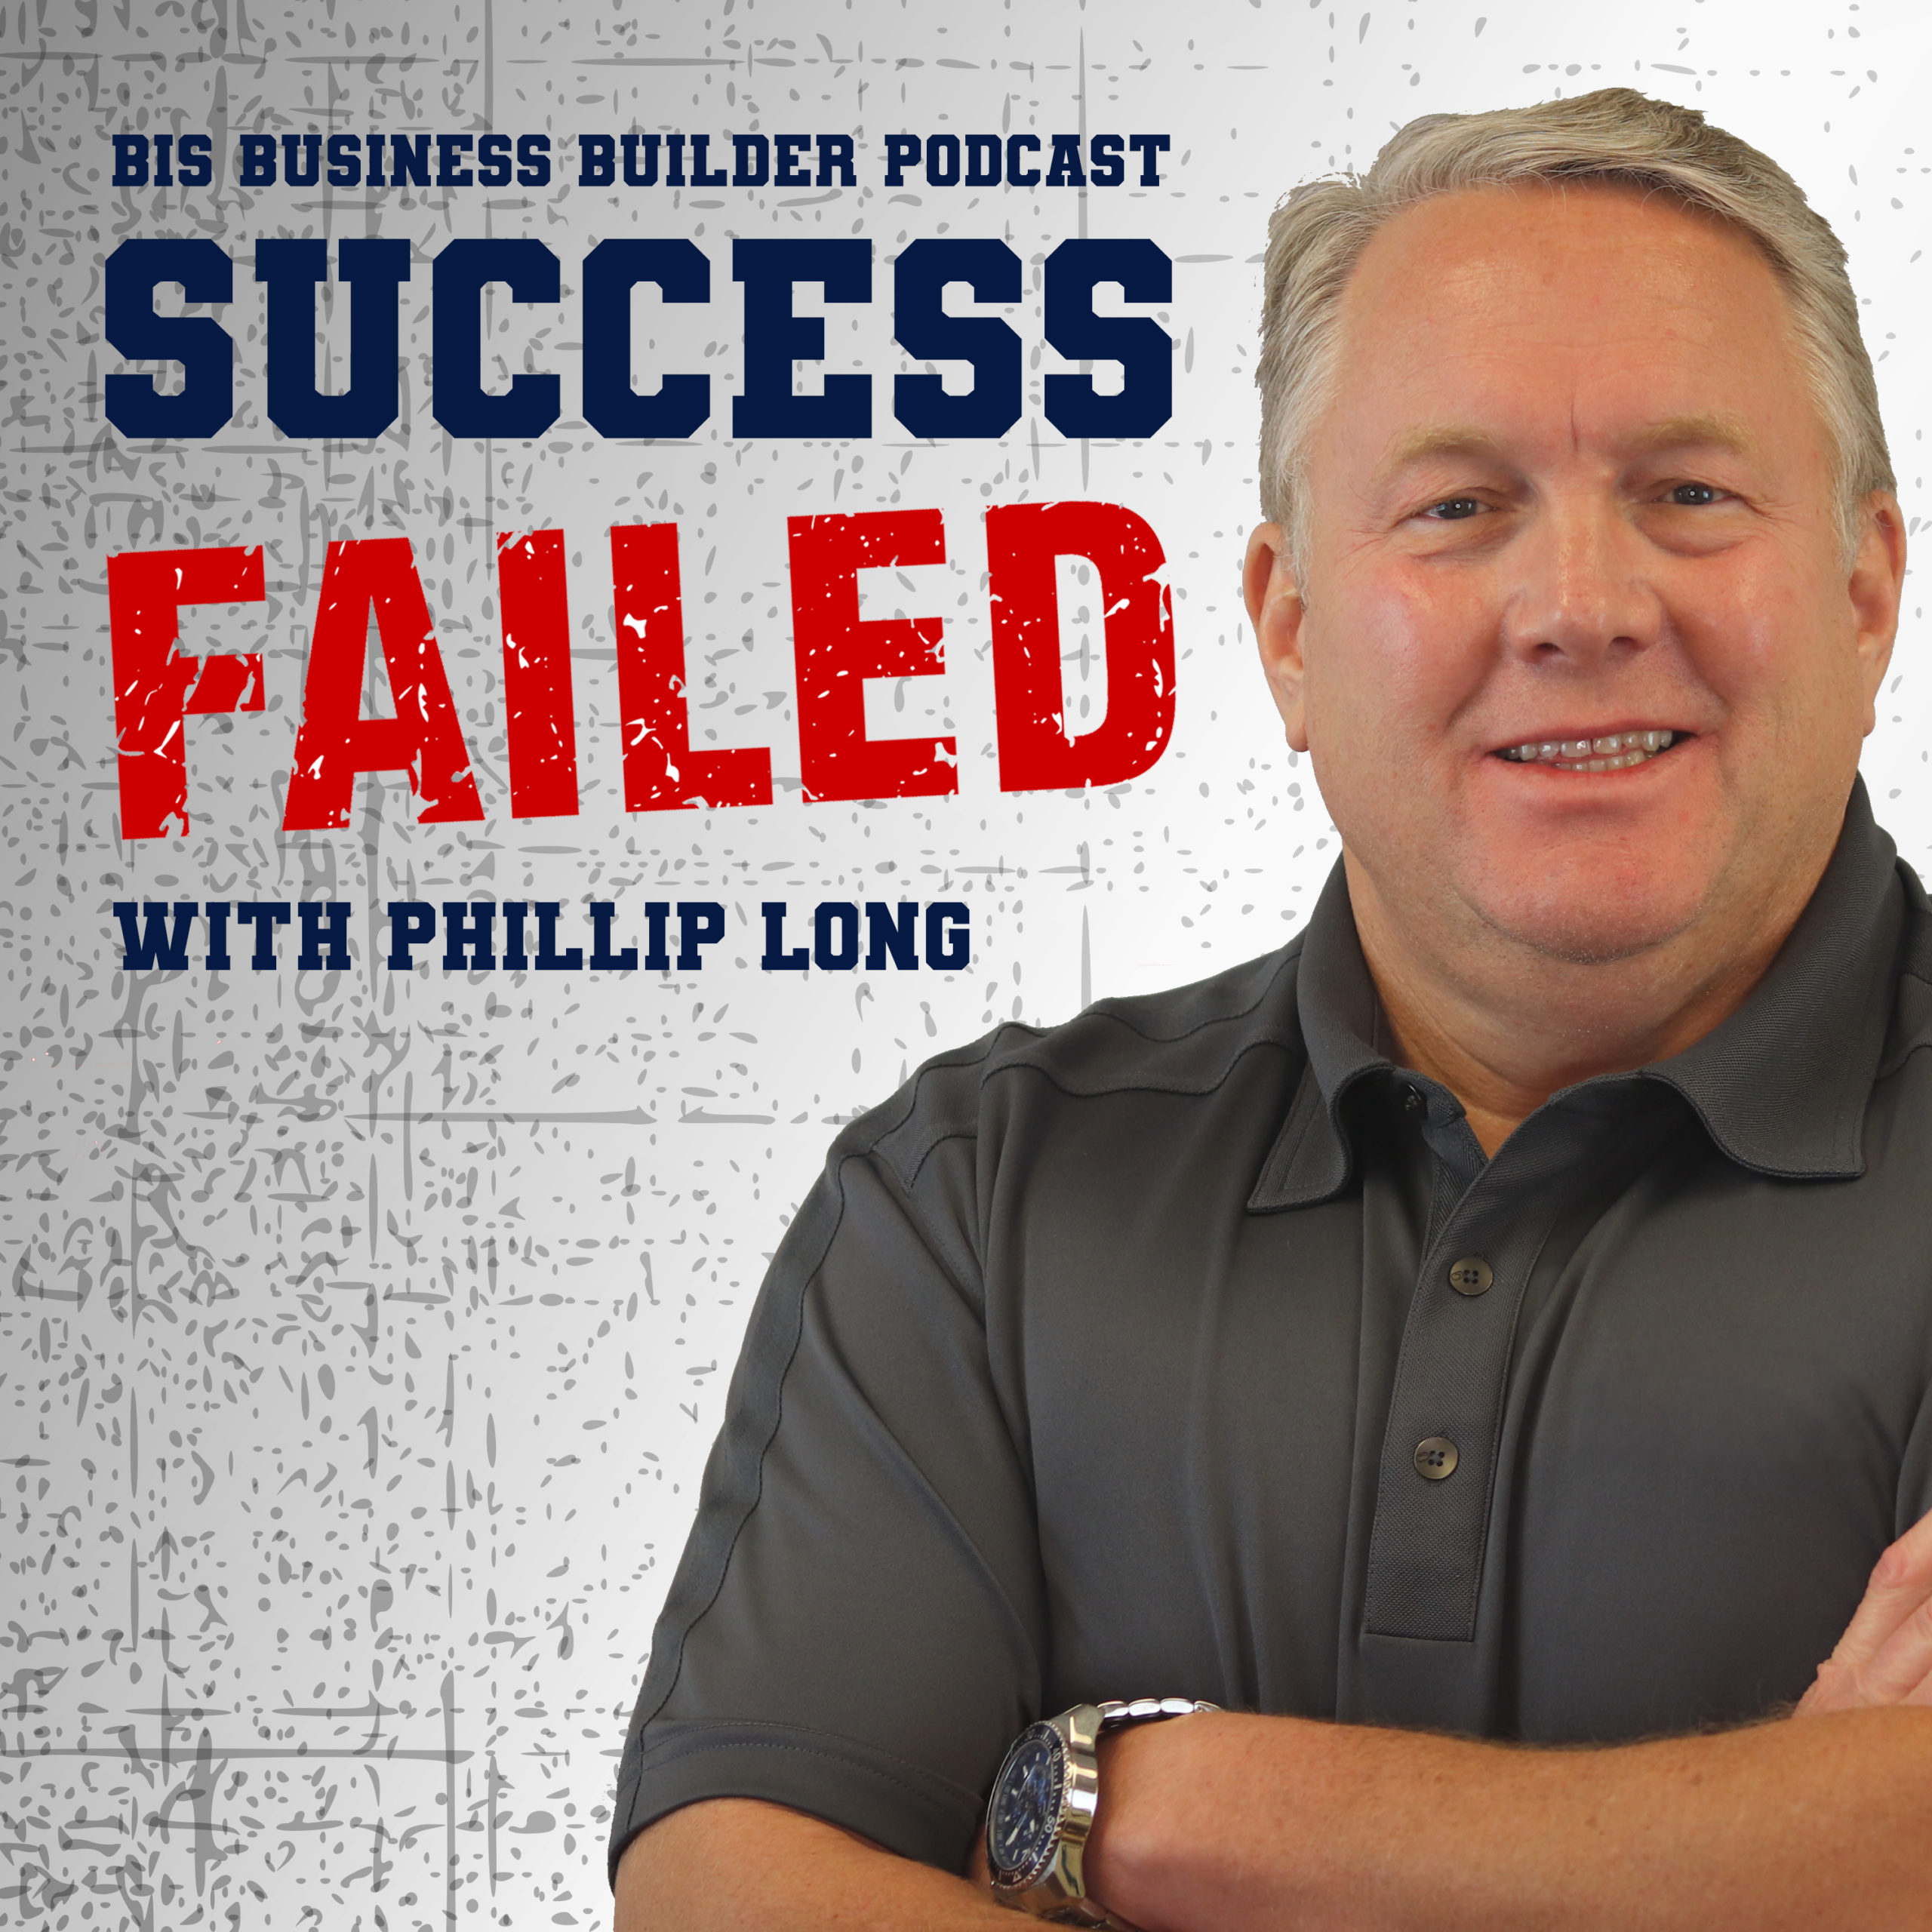 IT Support for Business Owners Podcast called Success Failed with Phillip Long